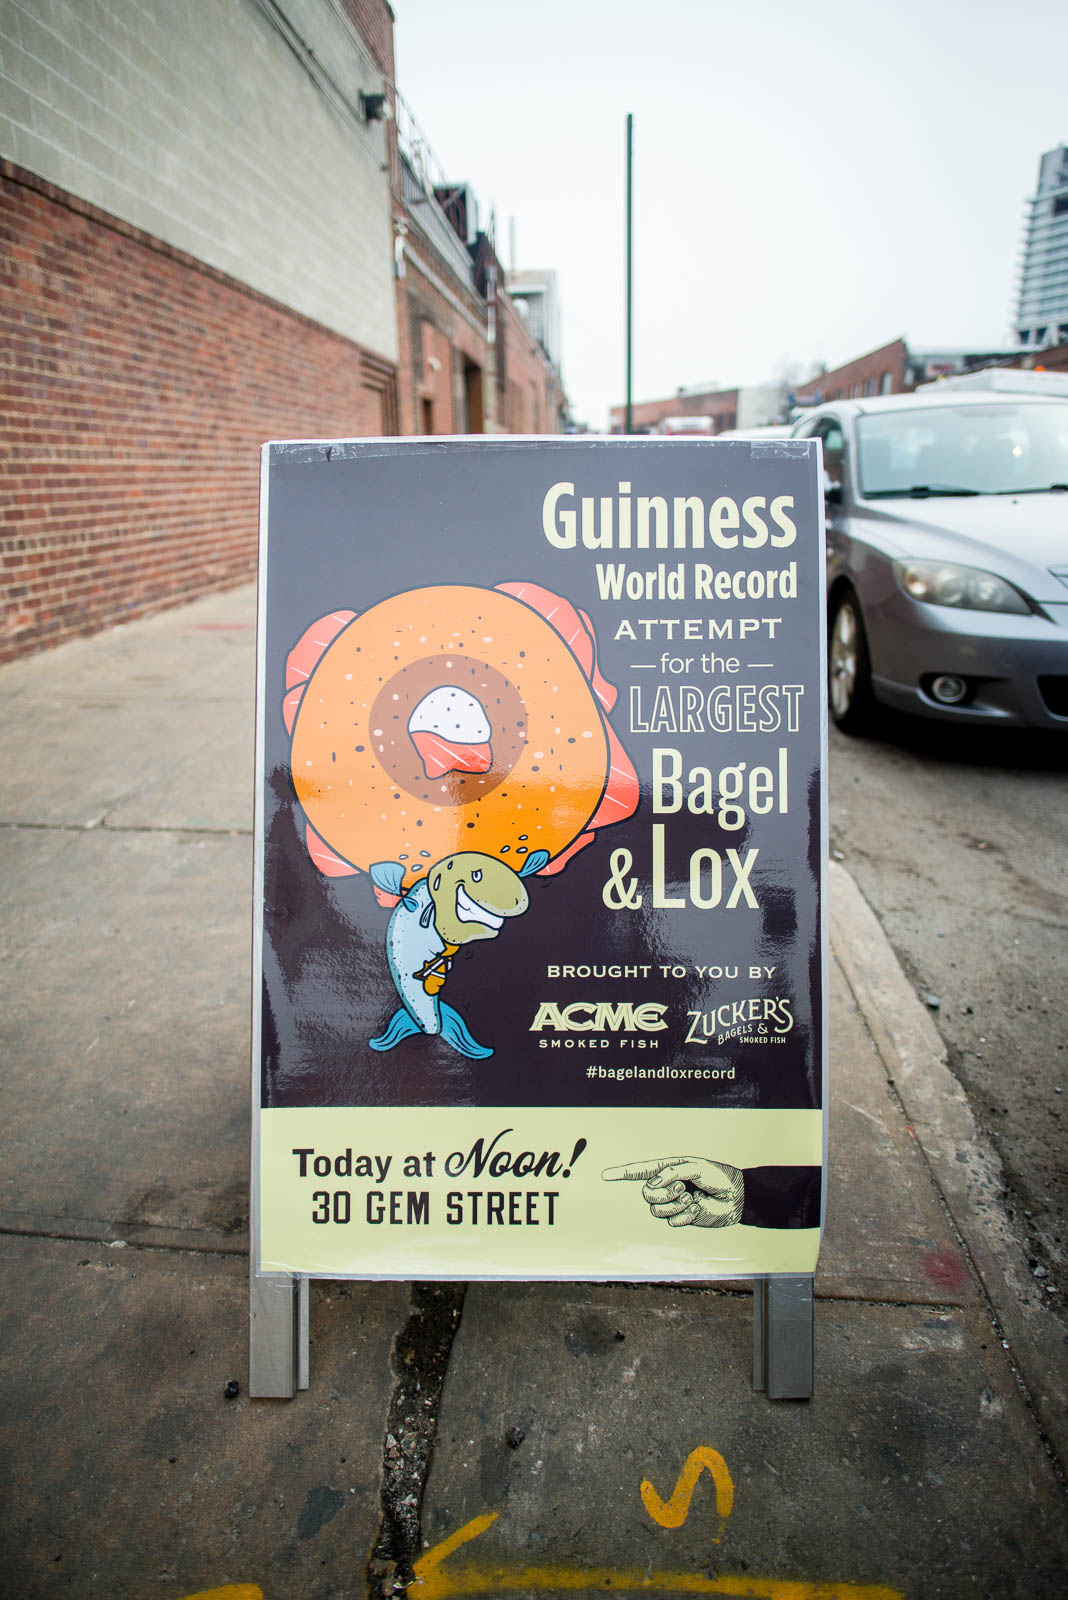 Guinness-World-Record-Bagel-and-Lox-by-Edwina-Hay-0679.jpg